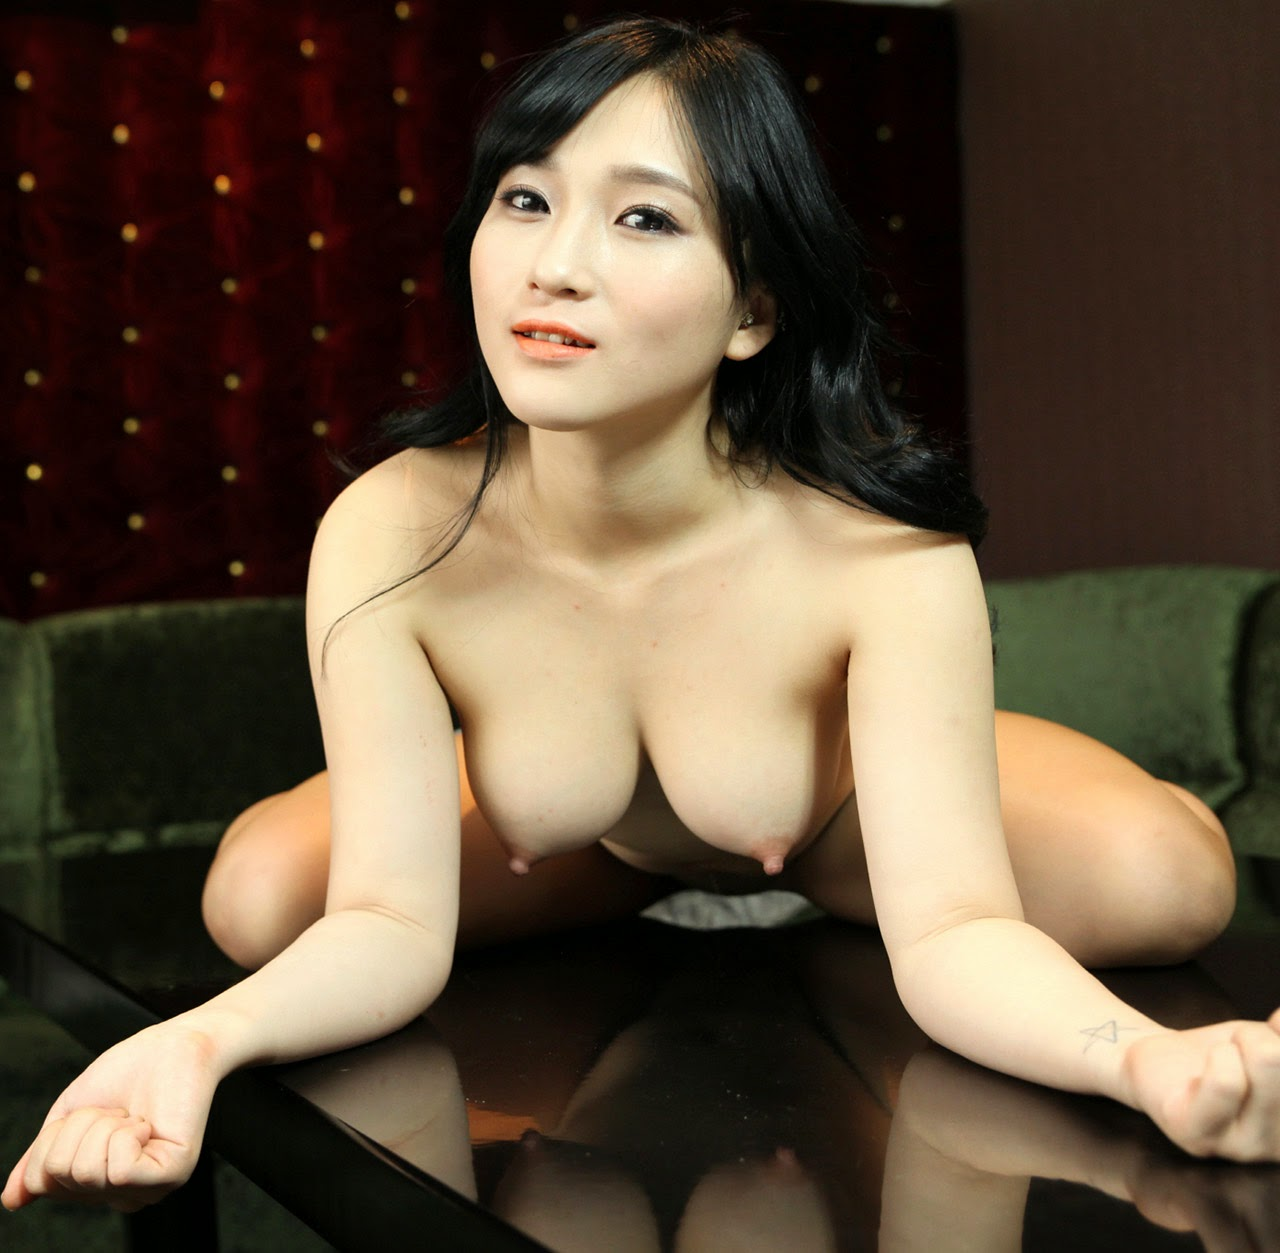 nudes Korean model